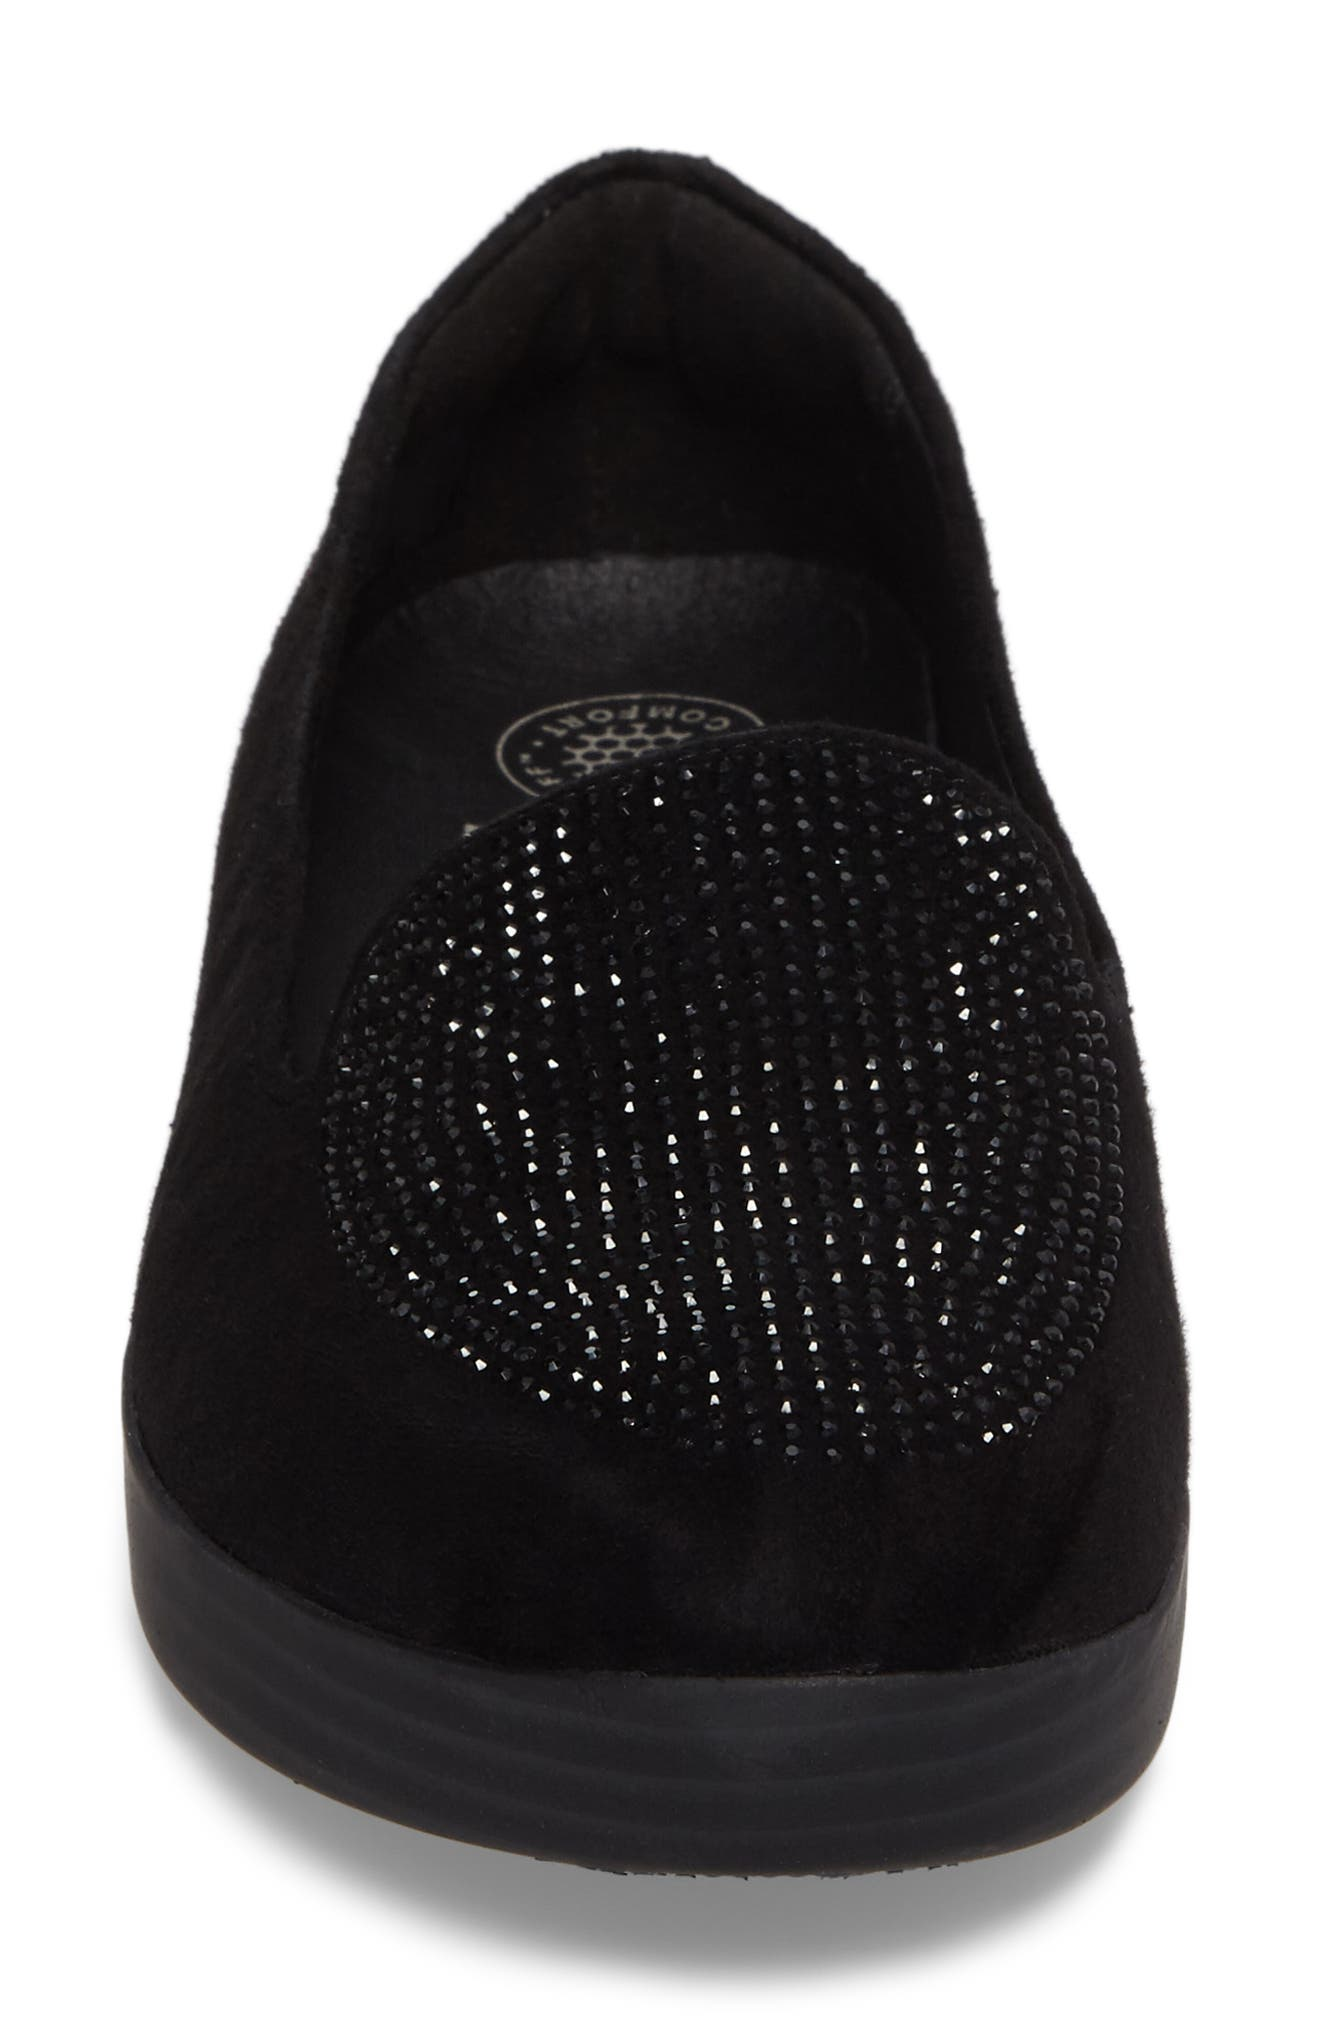 Alternate Image 4  - FitFlop Sparkly Sneakerloafer Slip-On (Women)